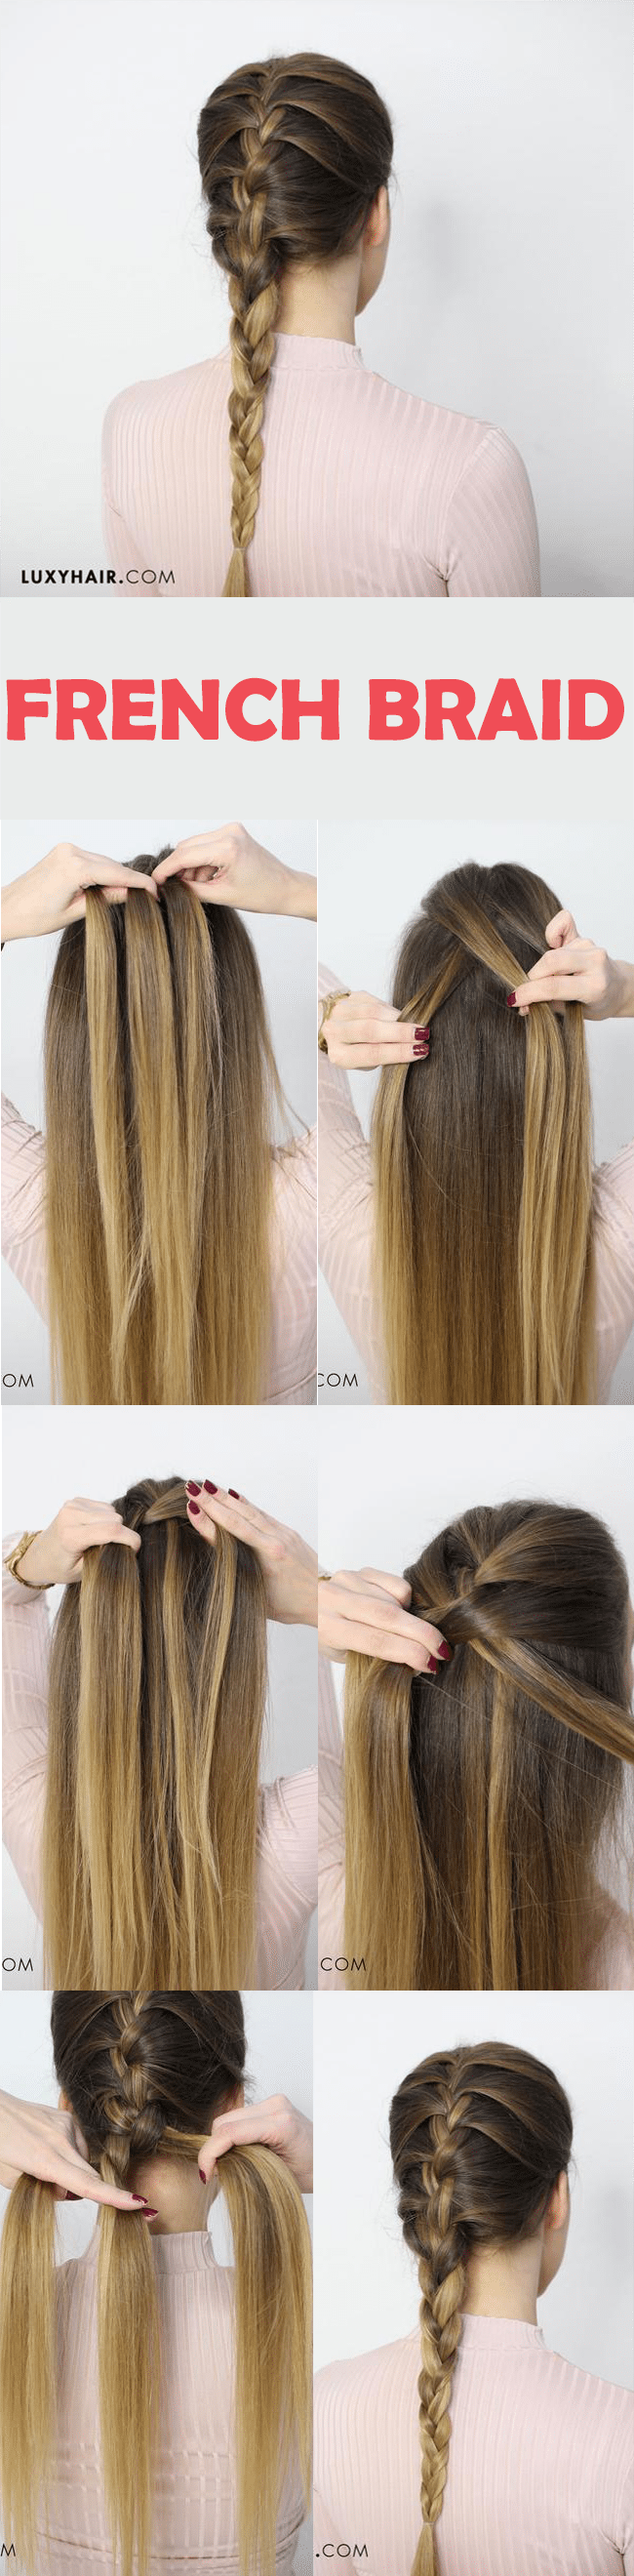 Top cute braided hairstyles for you hair style pinterest